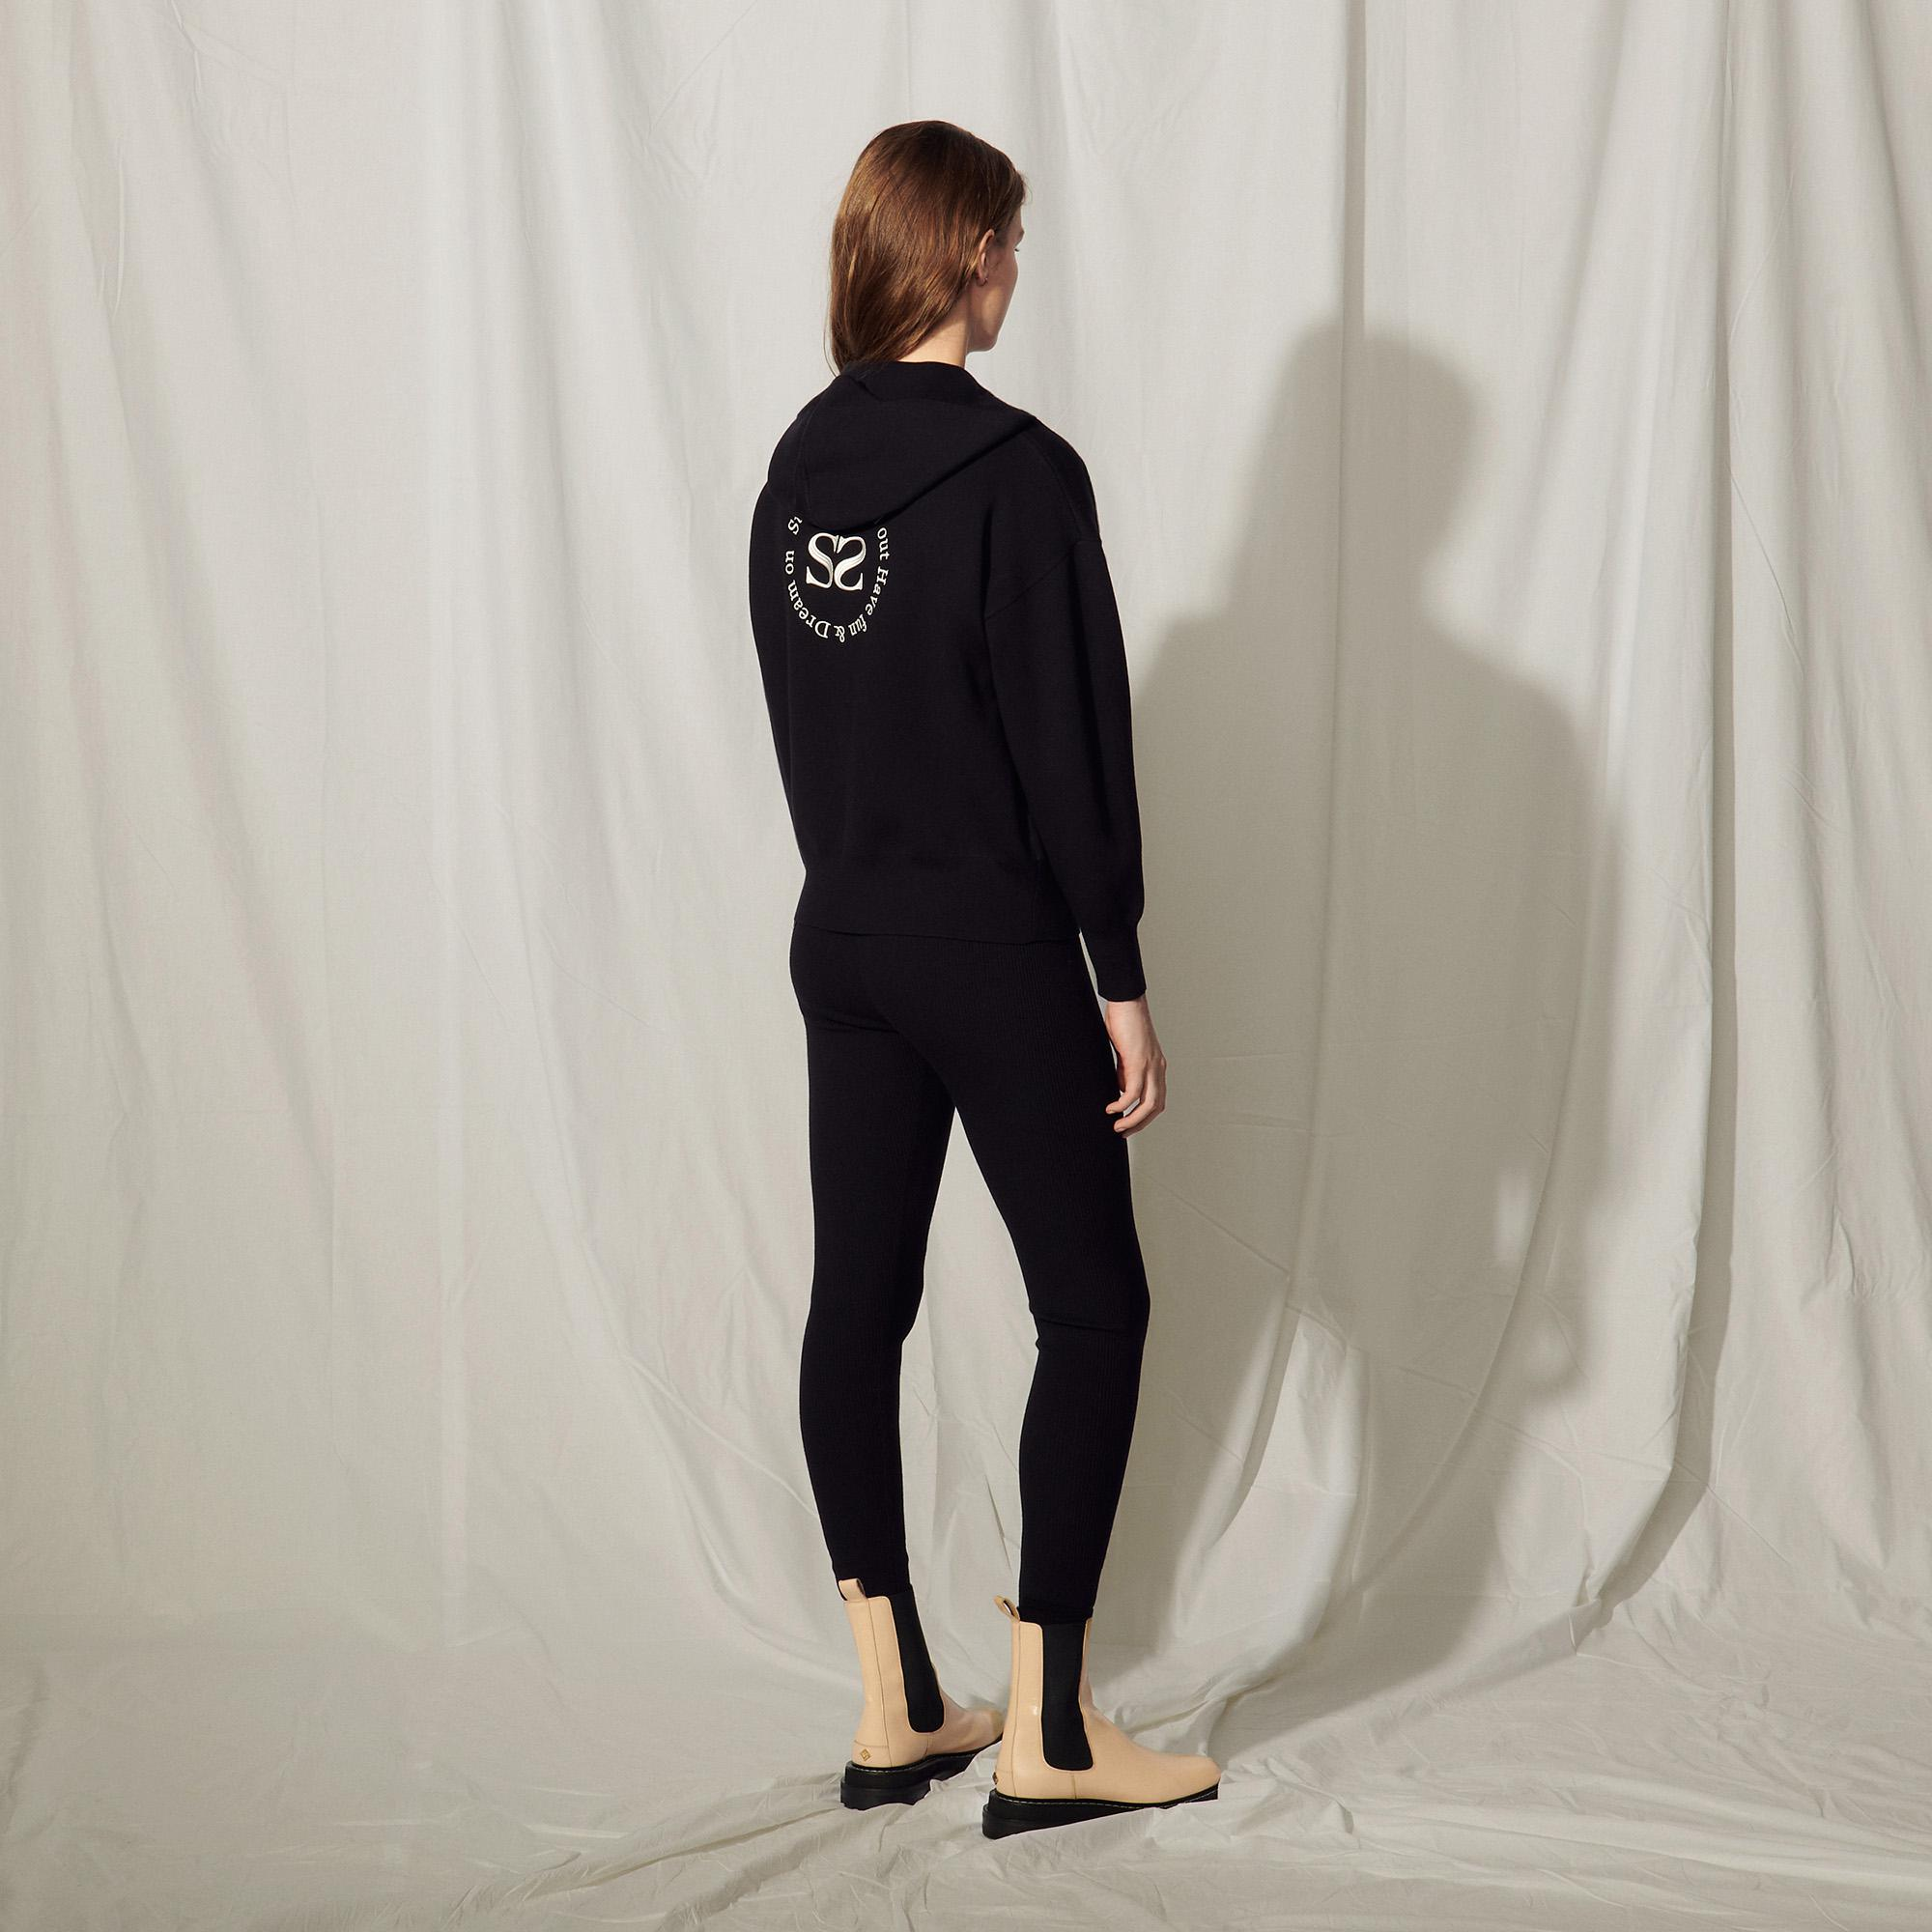 Zipped hoodie with an embroidered back 1